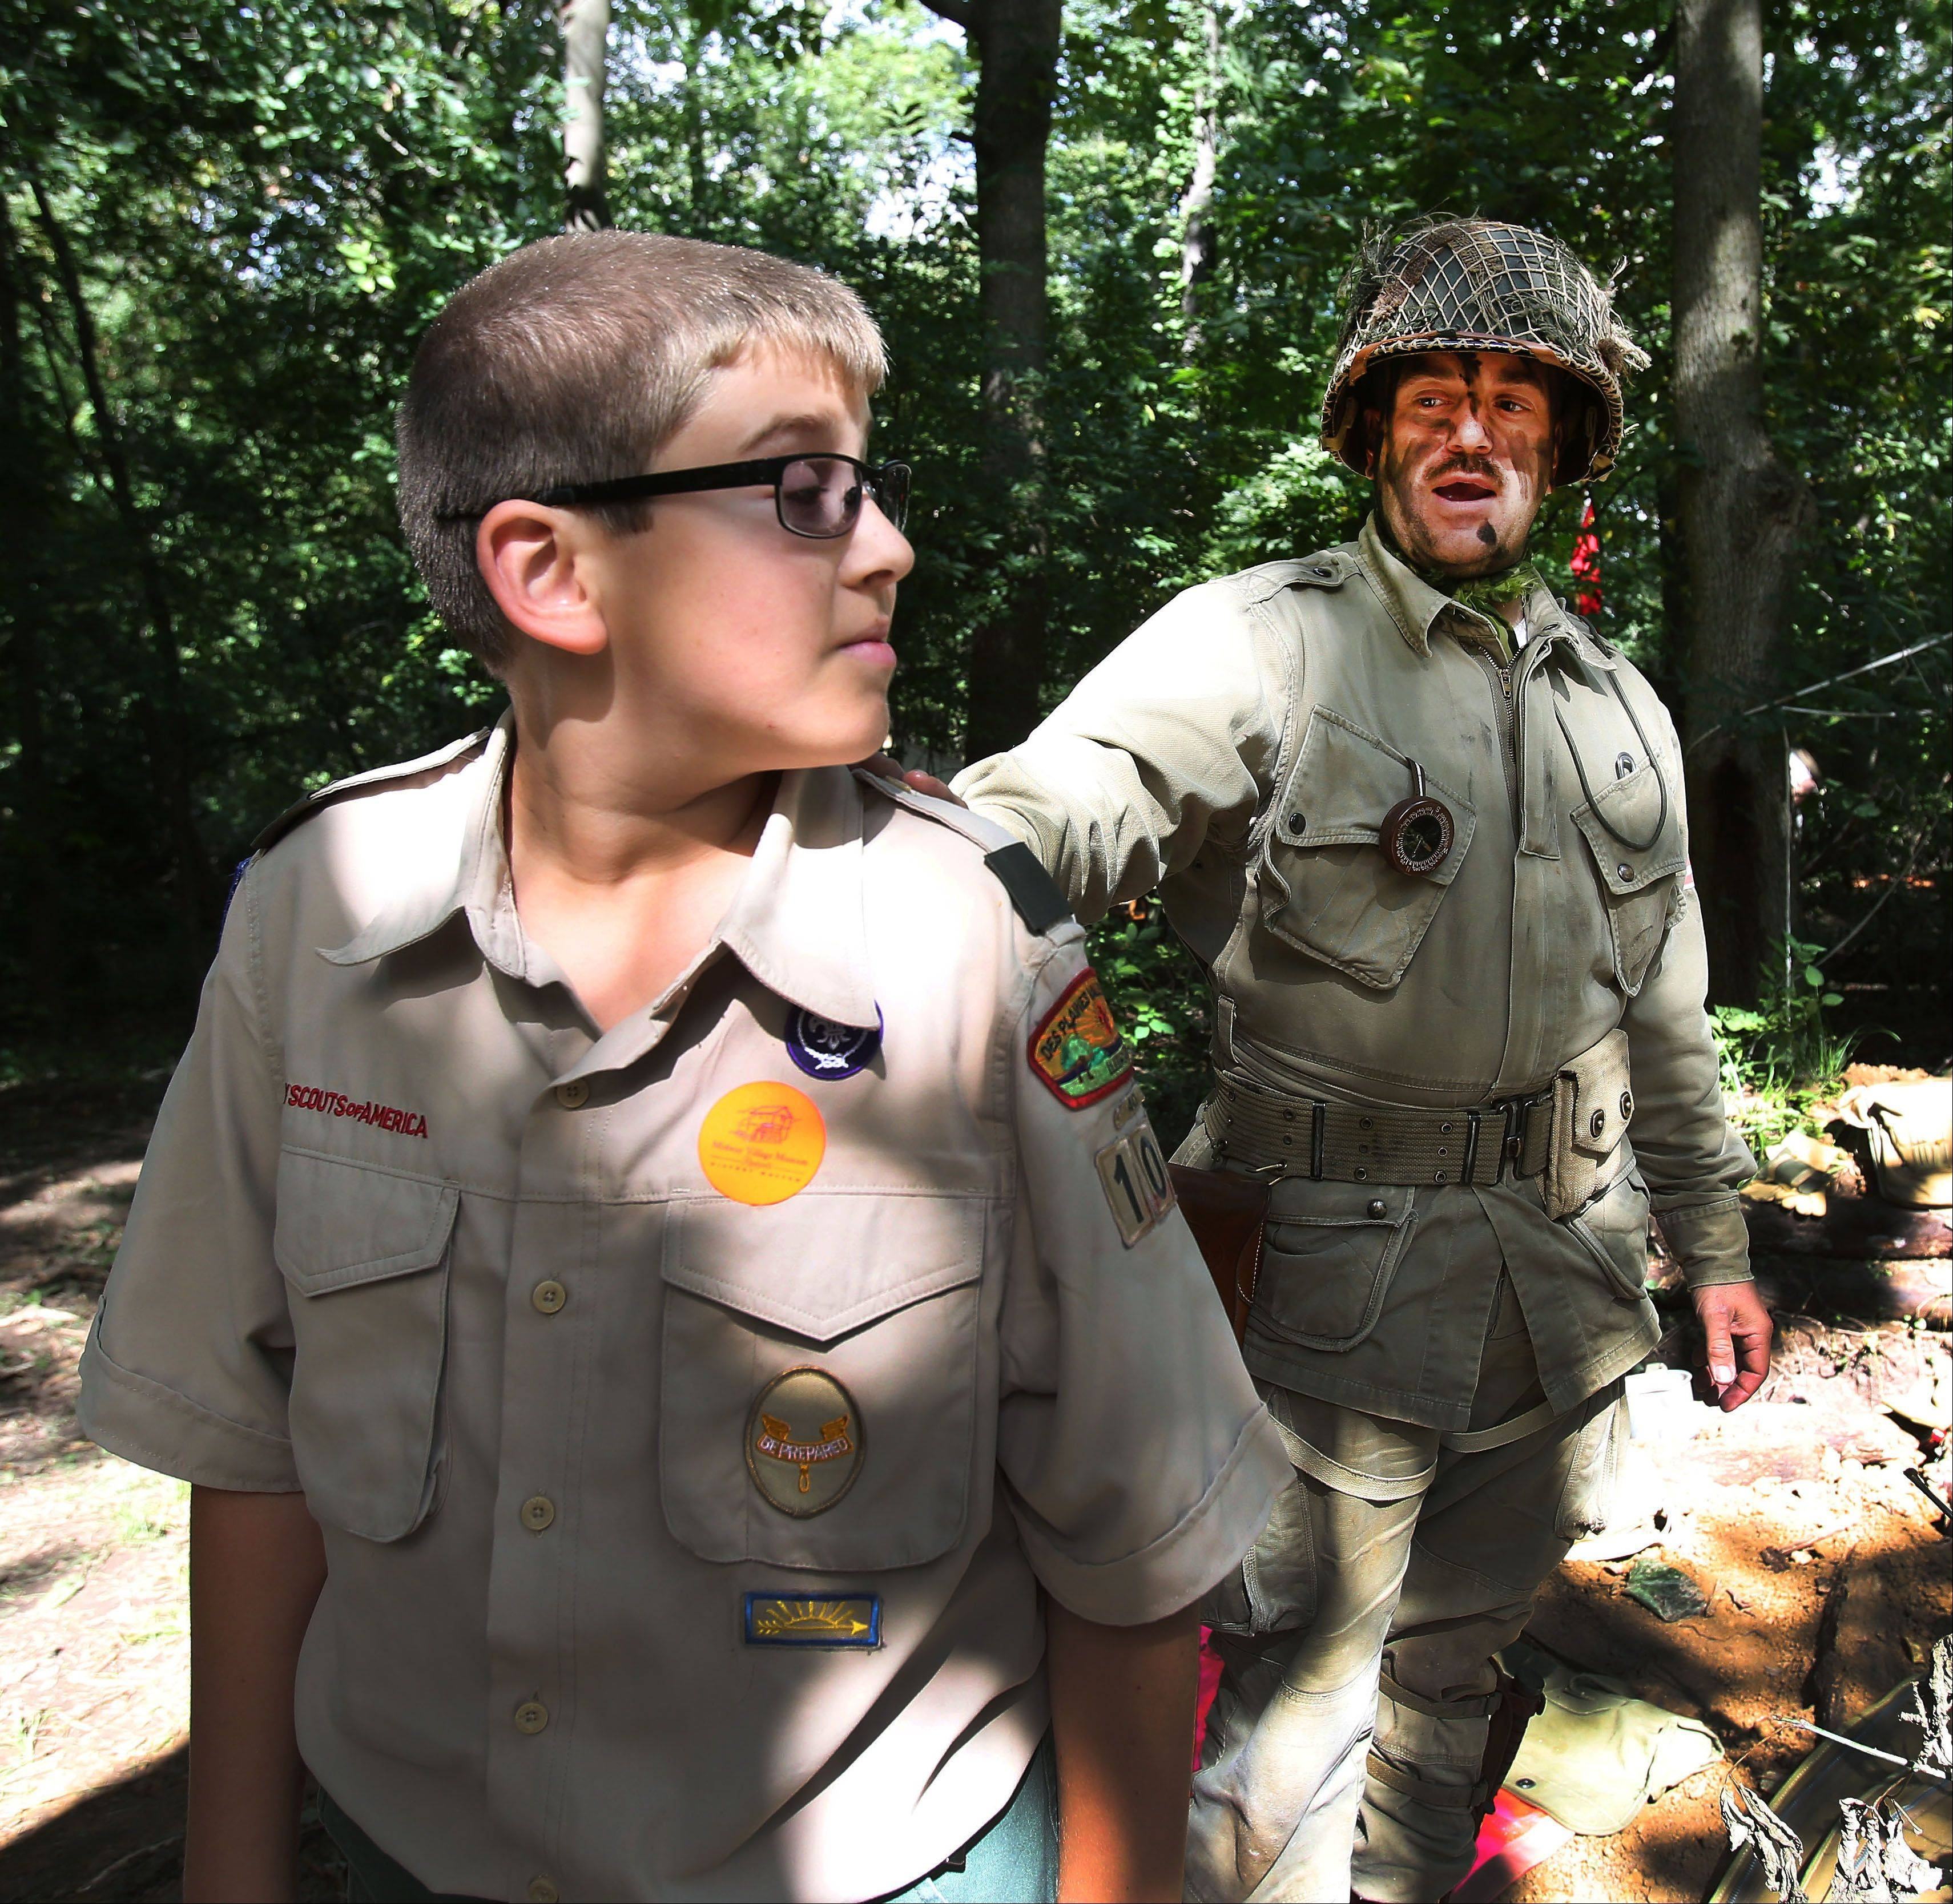 Cole Haubenreiser, 12, of Darien, gets a lesson in fighting a World War II battle from Zahareas during World War II Days in Rockford.